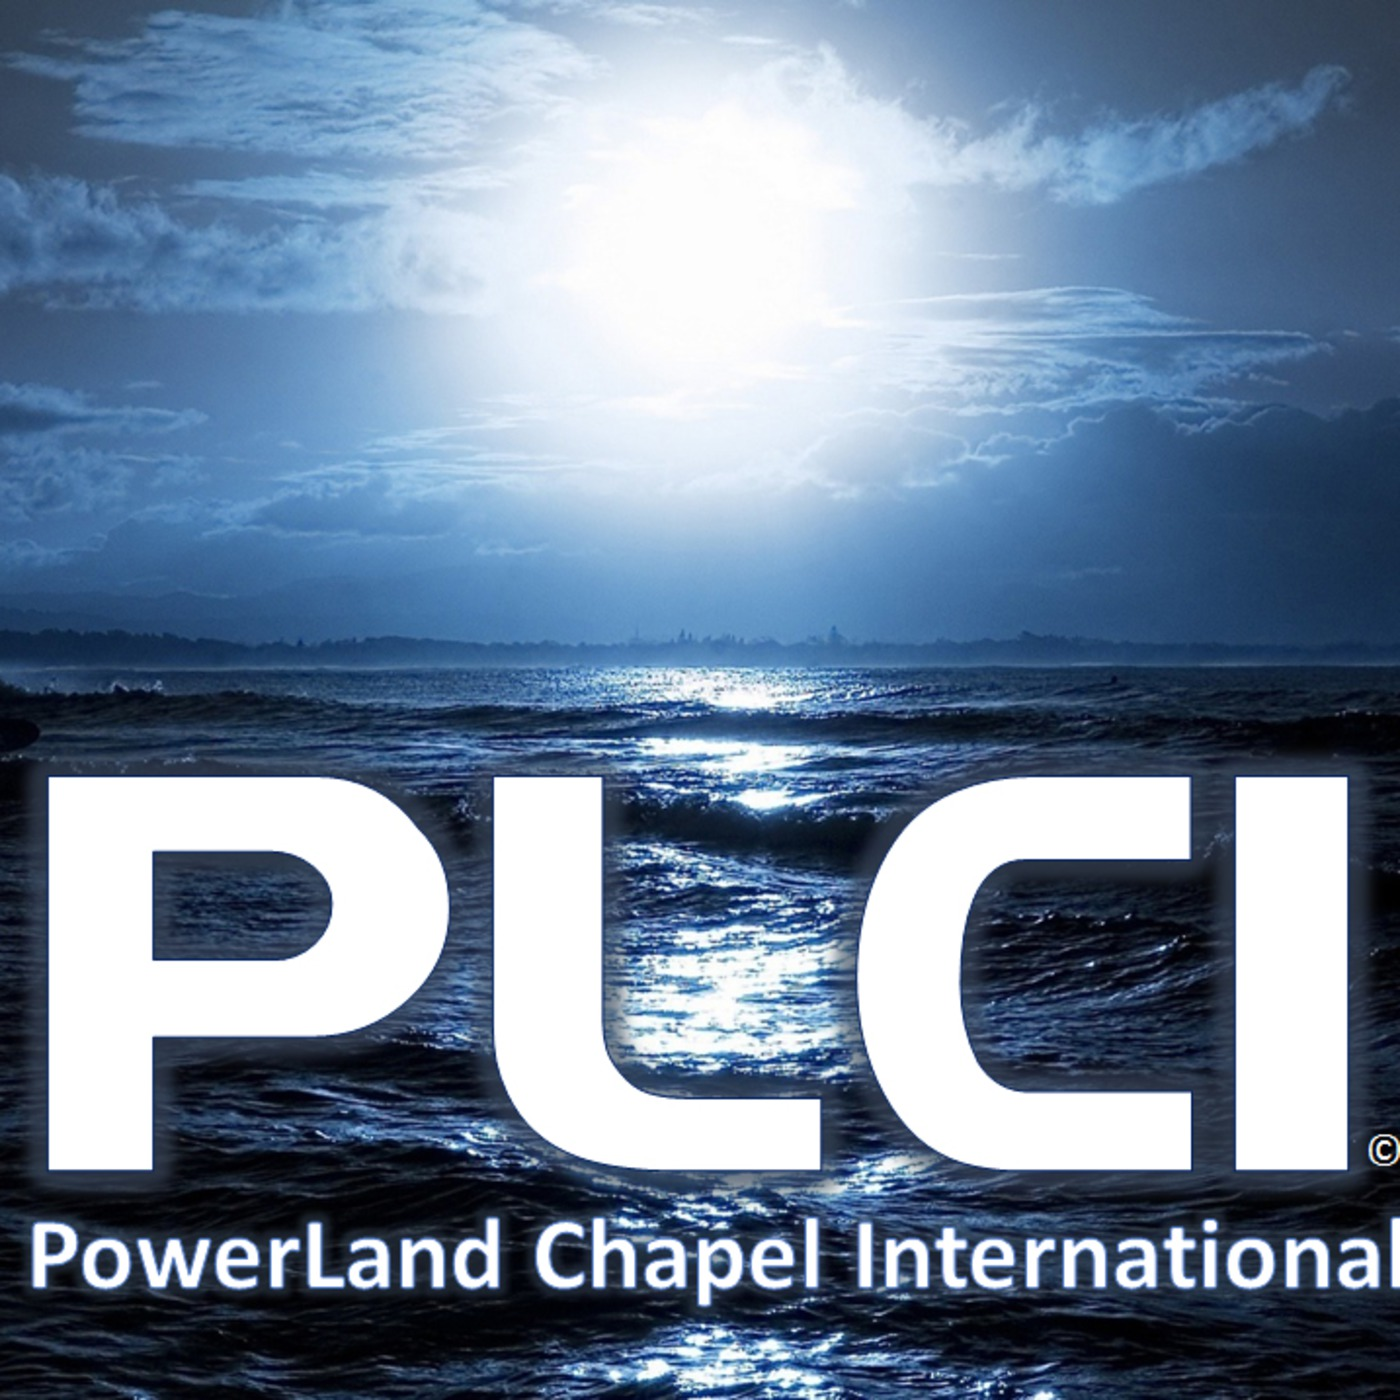 Powerland Chapel International